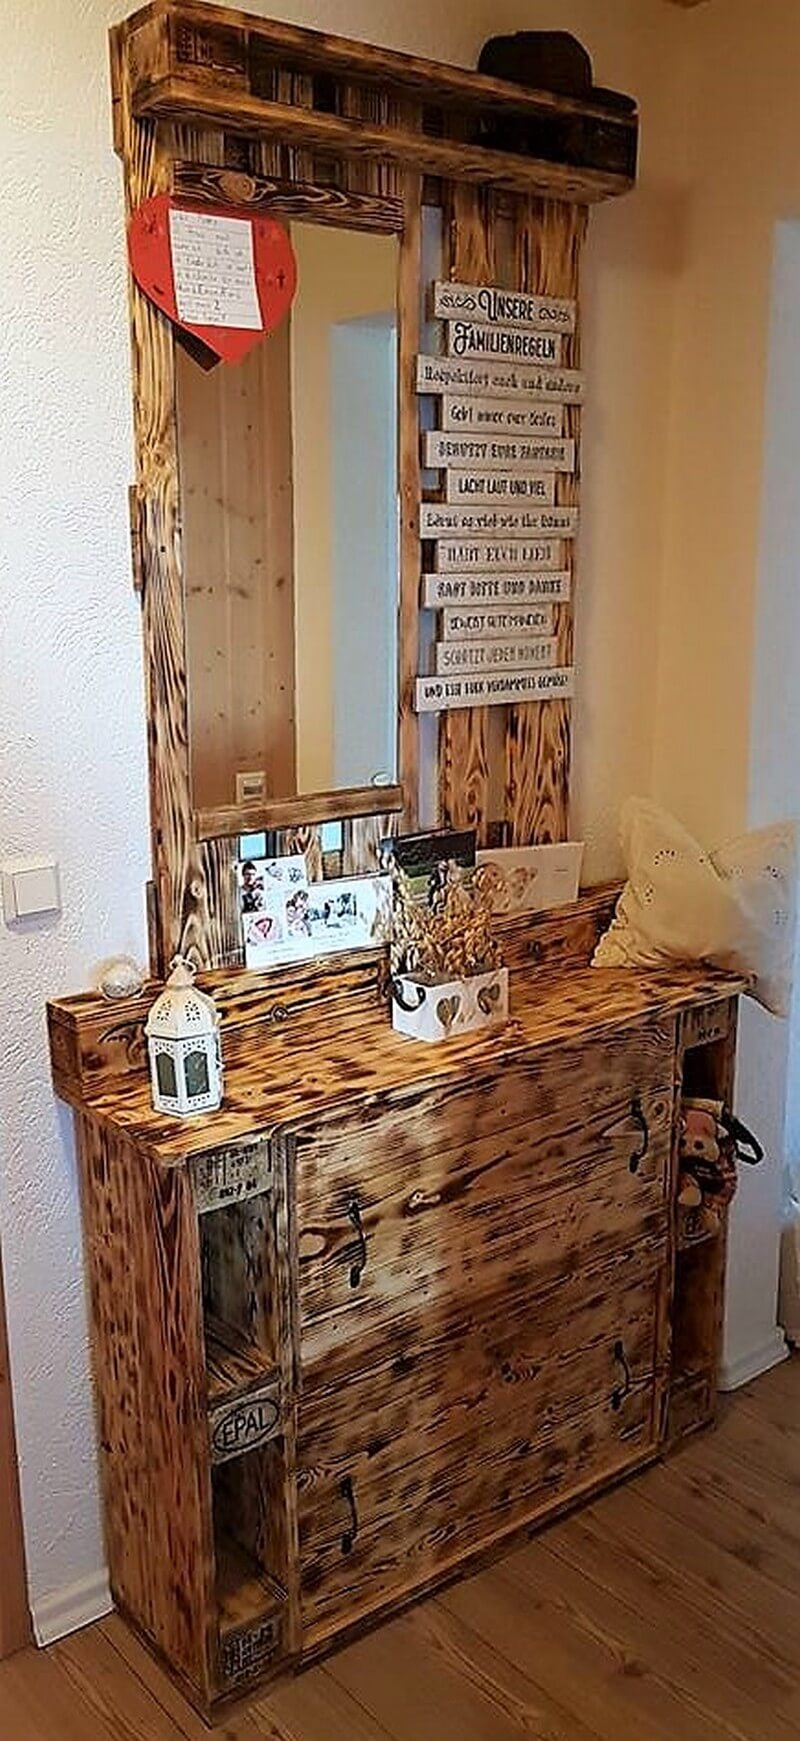 Original Diy Ideas For Wooden Pallets Recycling Wood